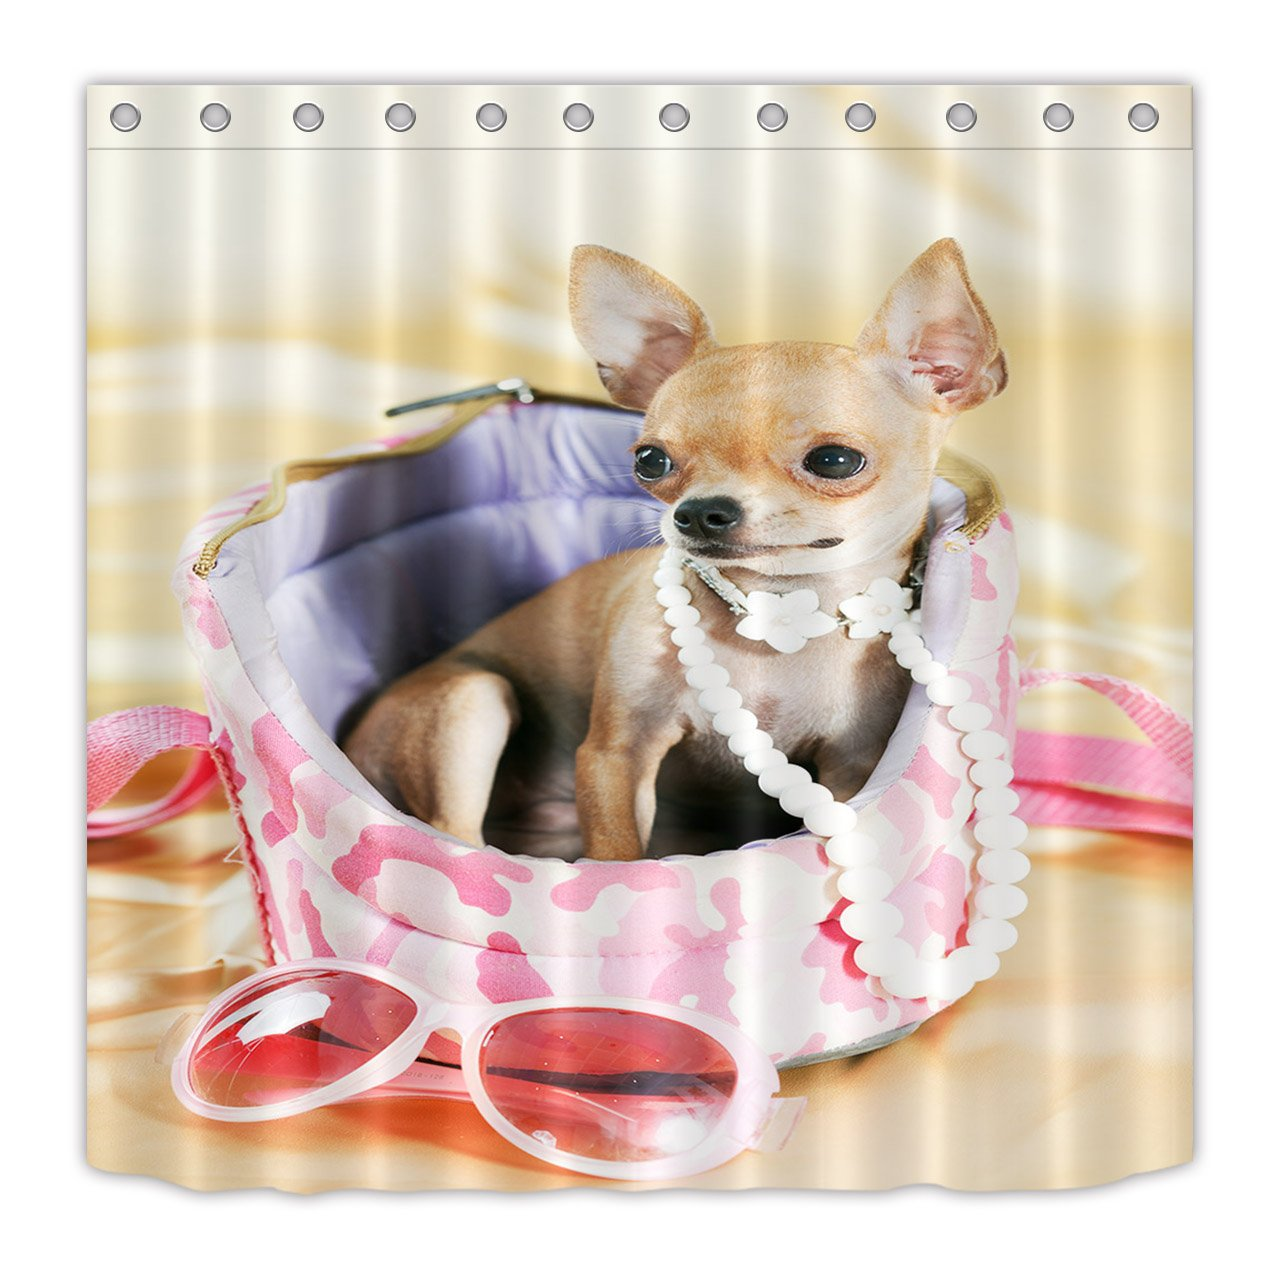 LB Chic Chihuahua Pearl Necklace Sunglasses Shower Curtains Set Pet Dog Animal Print Curtain For Bathroom 70x70 Waterproof Anti Mold